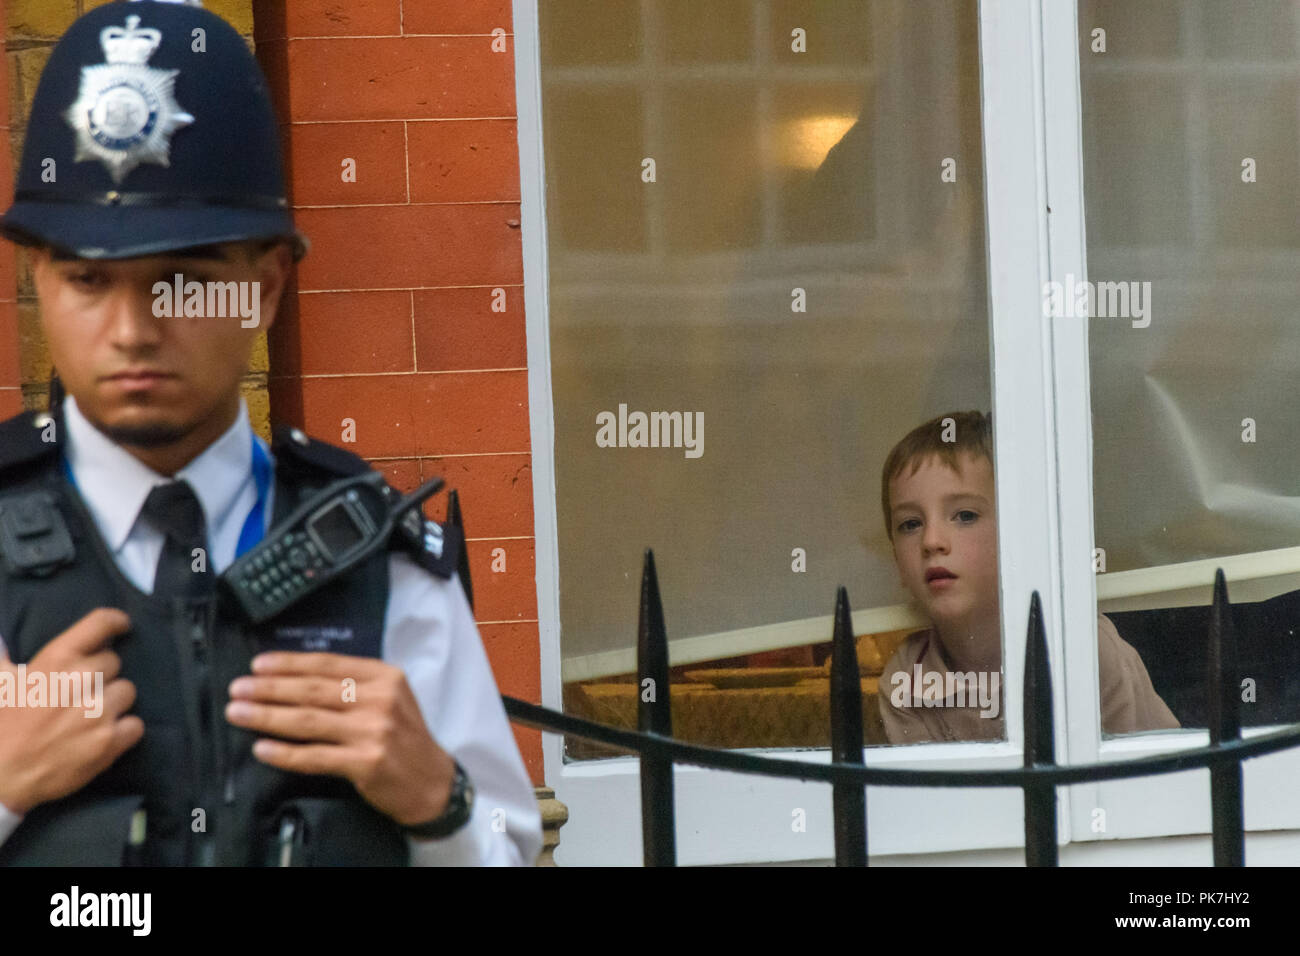 London, UK. 11th Sept 2018. One of the Rees-Mogg children watches from the window as Class War protest at the £5.6m Westminster town house of Jacob Rees-Mogg. Class War say Nanny Cook, Jacob Rees-Mogg's nanny who now looks after him and his six children, ceased to exist as an independent human 50 years ago and has been subsumed into the Mogg family as if she was being confined in the tower of a gothic mansion. The protest starred former Class War Westminster candidate Adam Clifford as Jacob Rees-Mogg and Jane Nicholl as Nanny Crook, as well as a giant penis and offered escape to Veronica Cook, Stock Photo